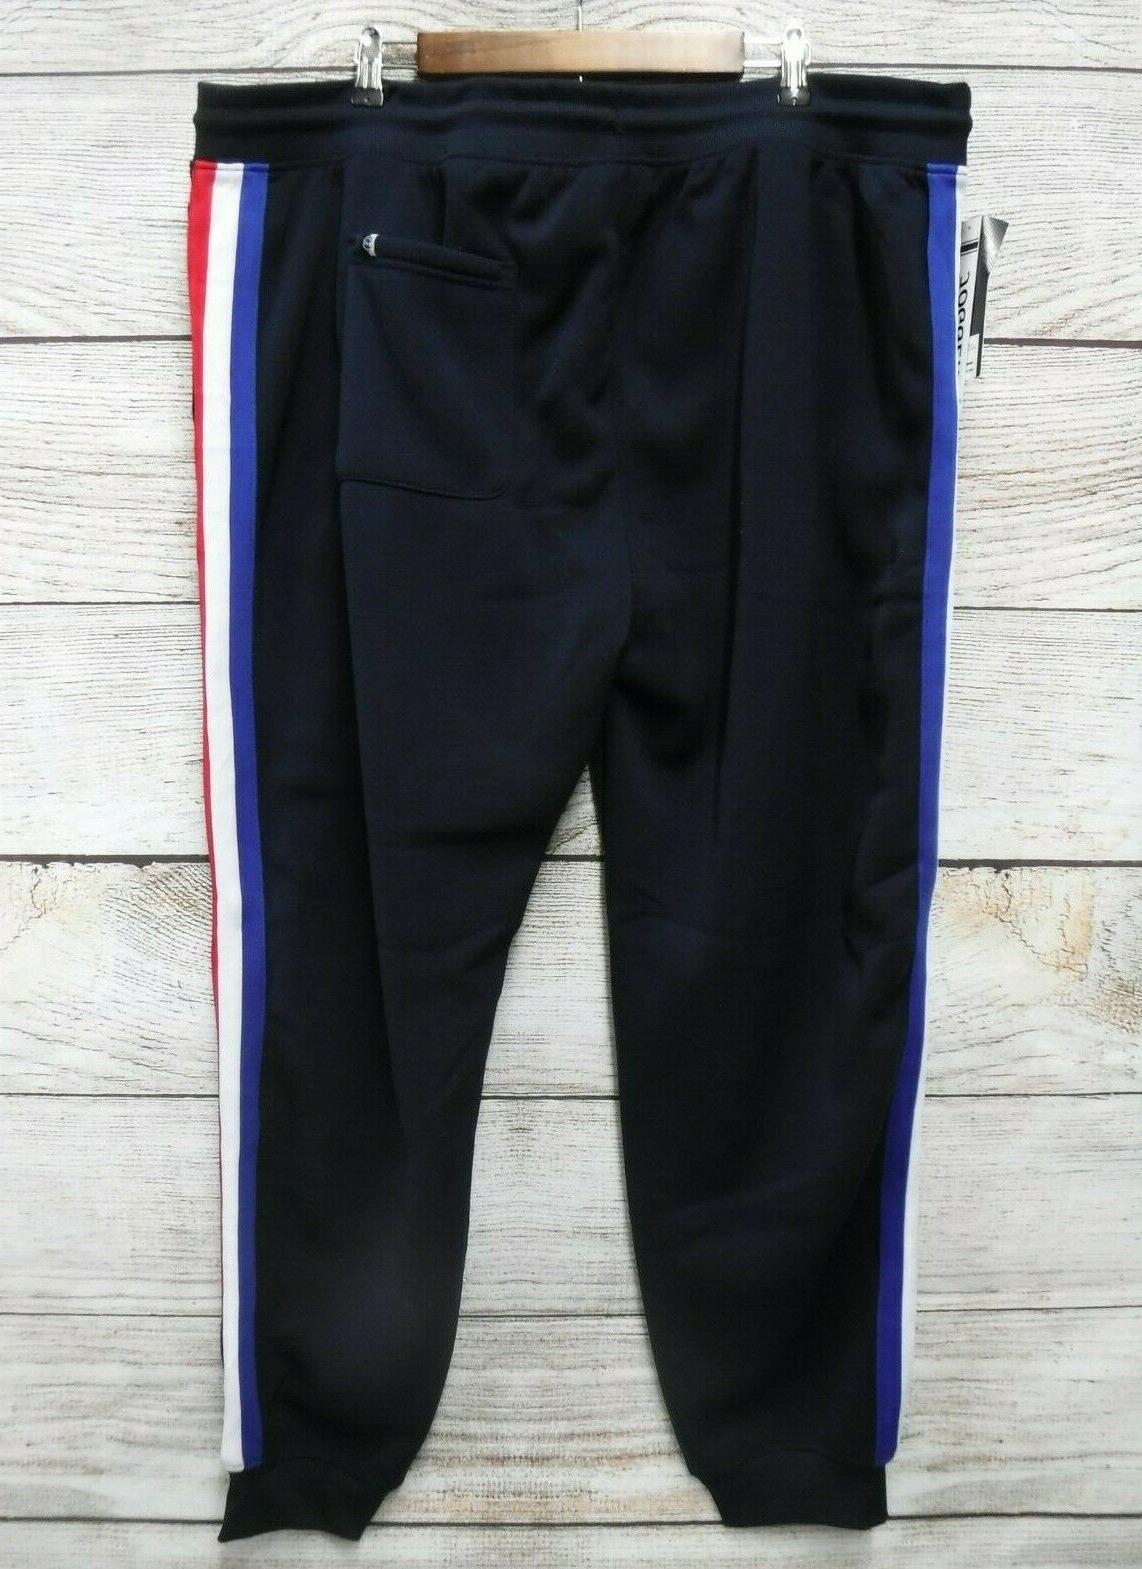 Southpole Tall Mens Size 6XB Pants